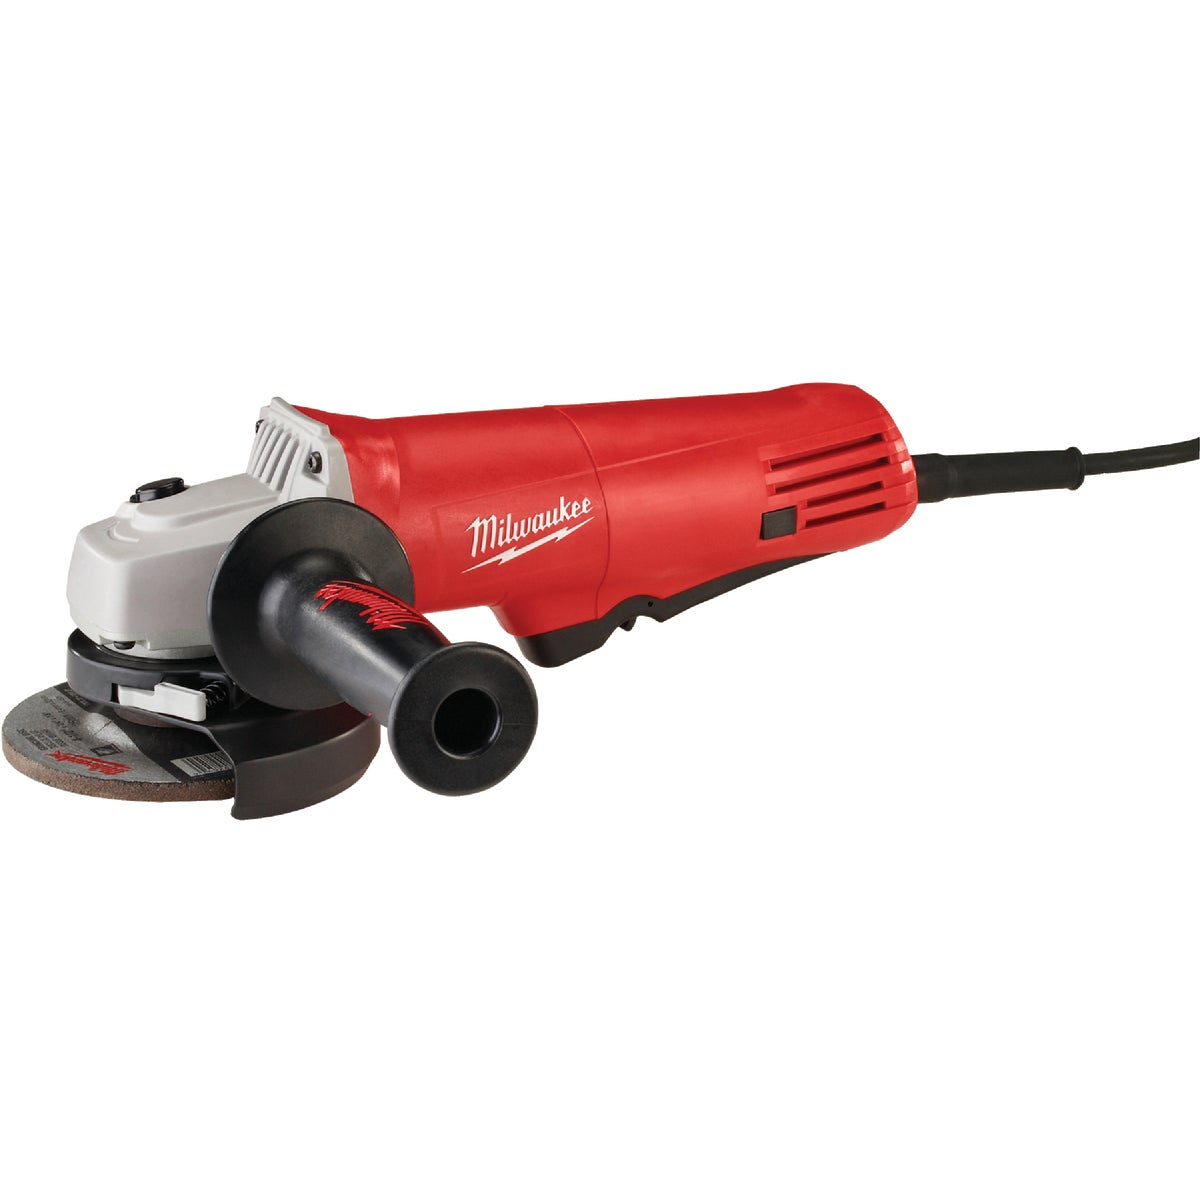 "7.5A 4-1/2"" GRINDER - 6140-30 by Milwaukee Elec Tool"